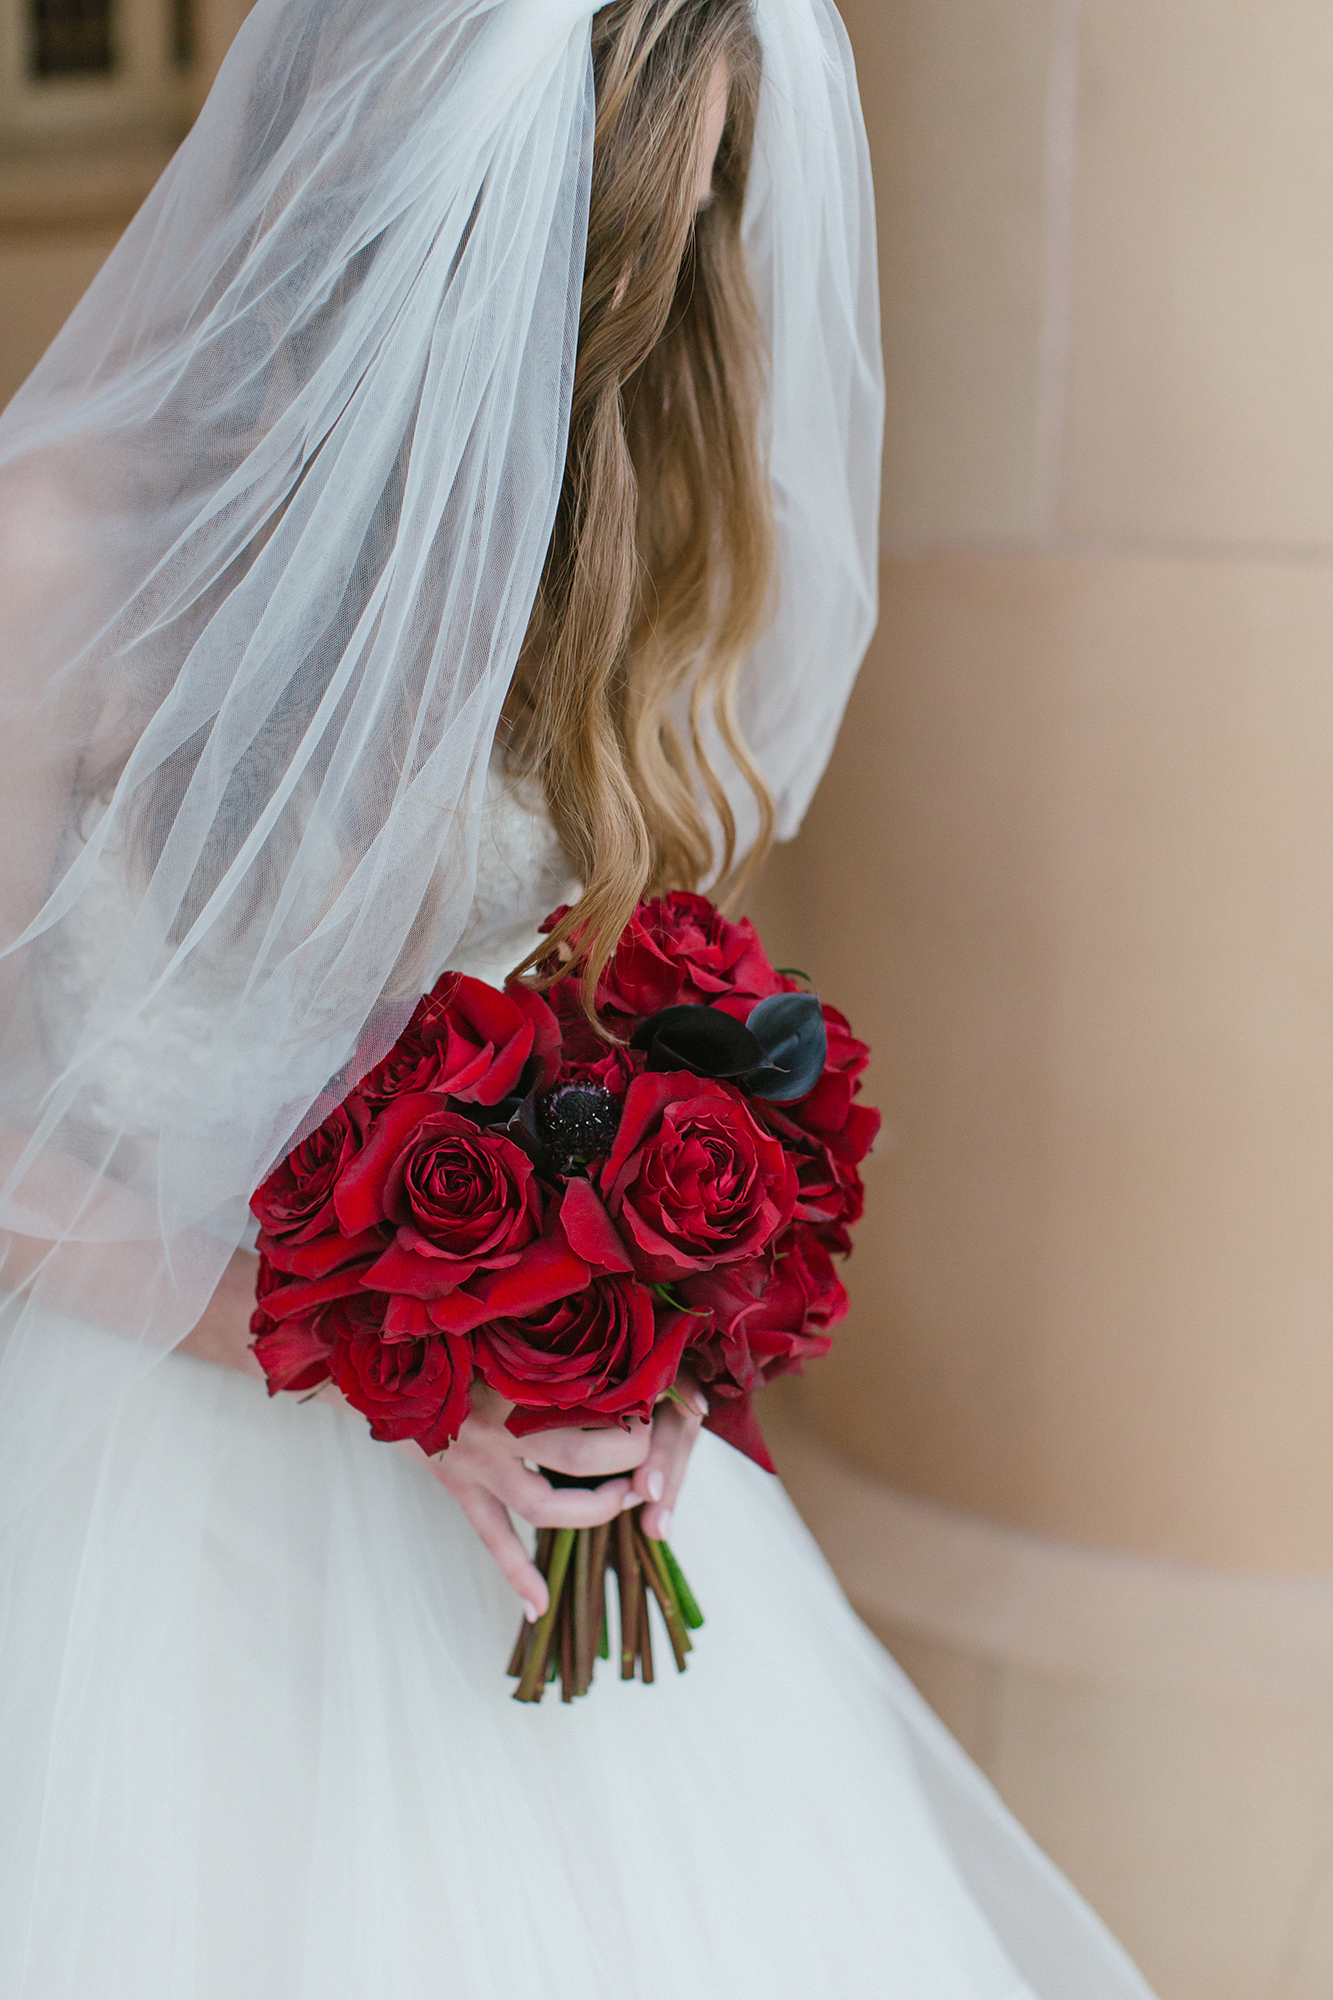 duff goldman johnna colbry brides bouquet red roses